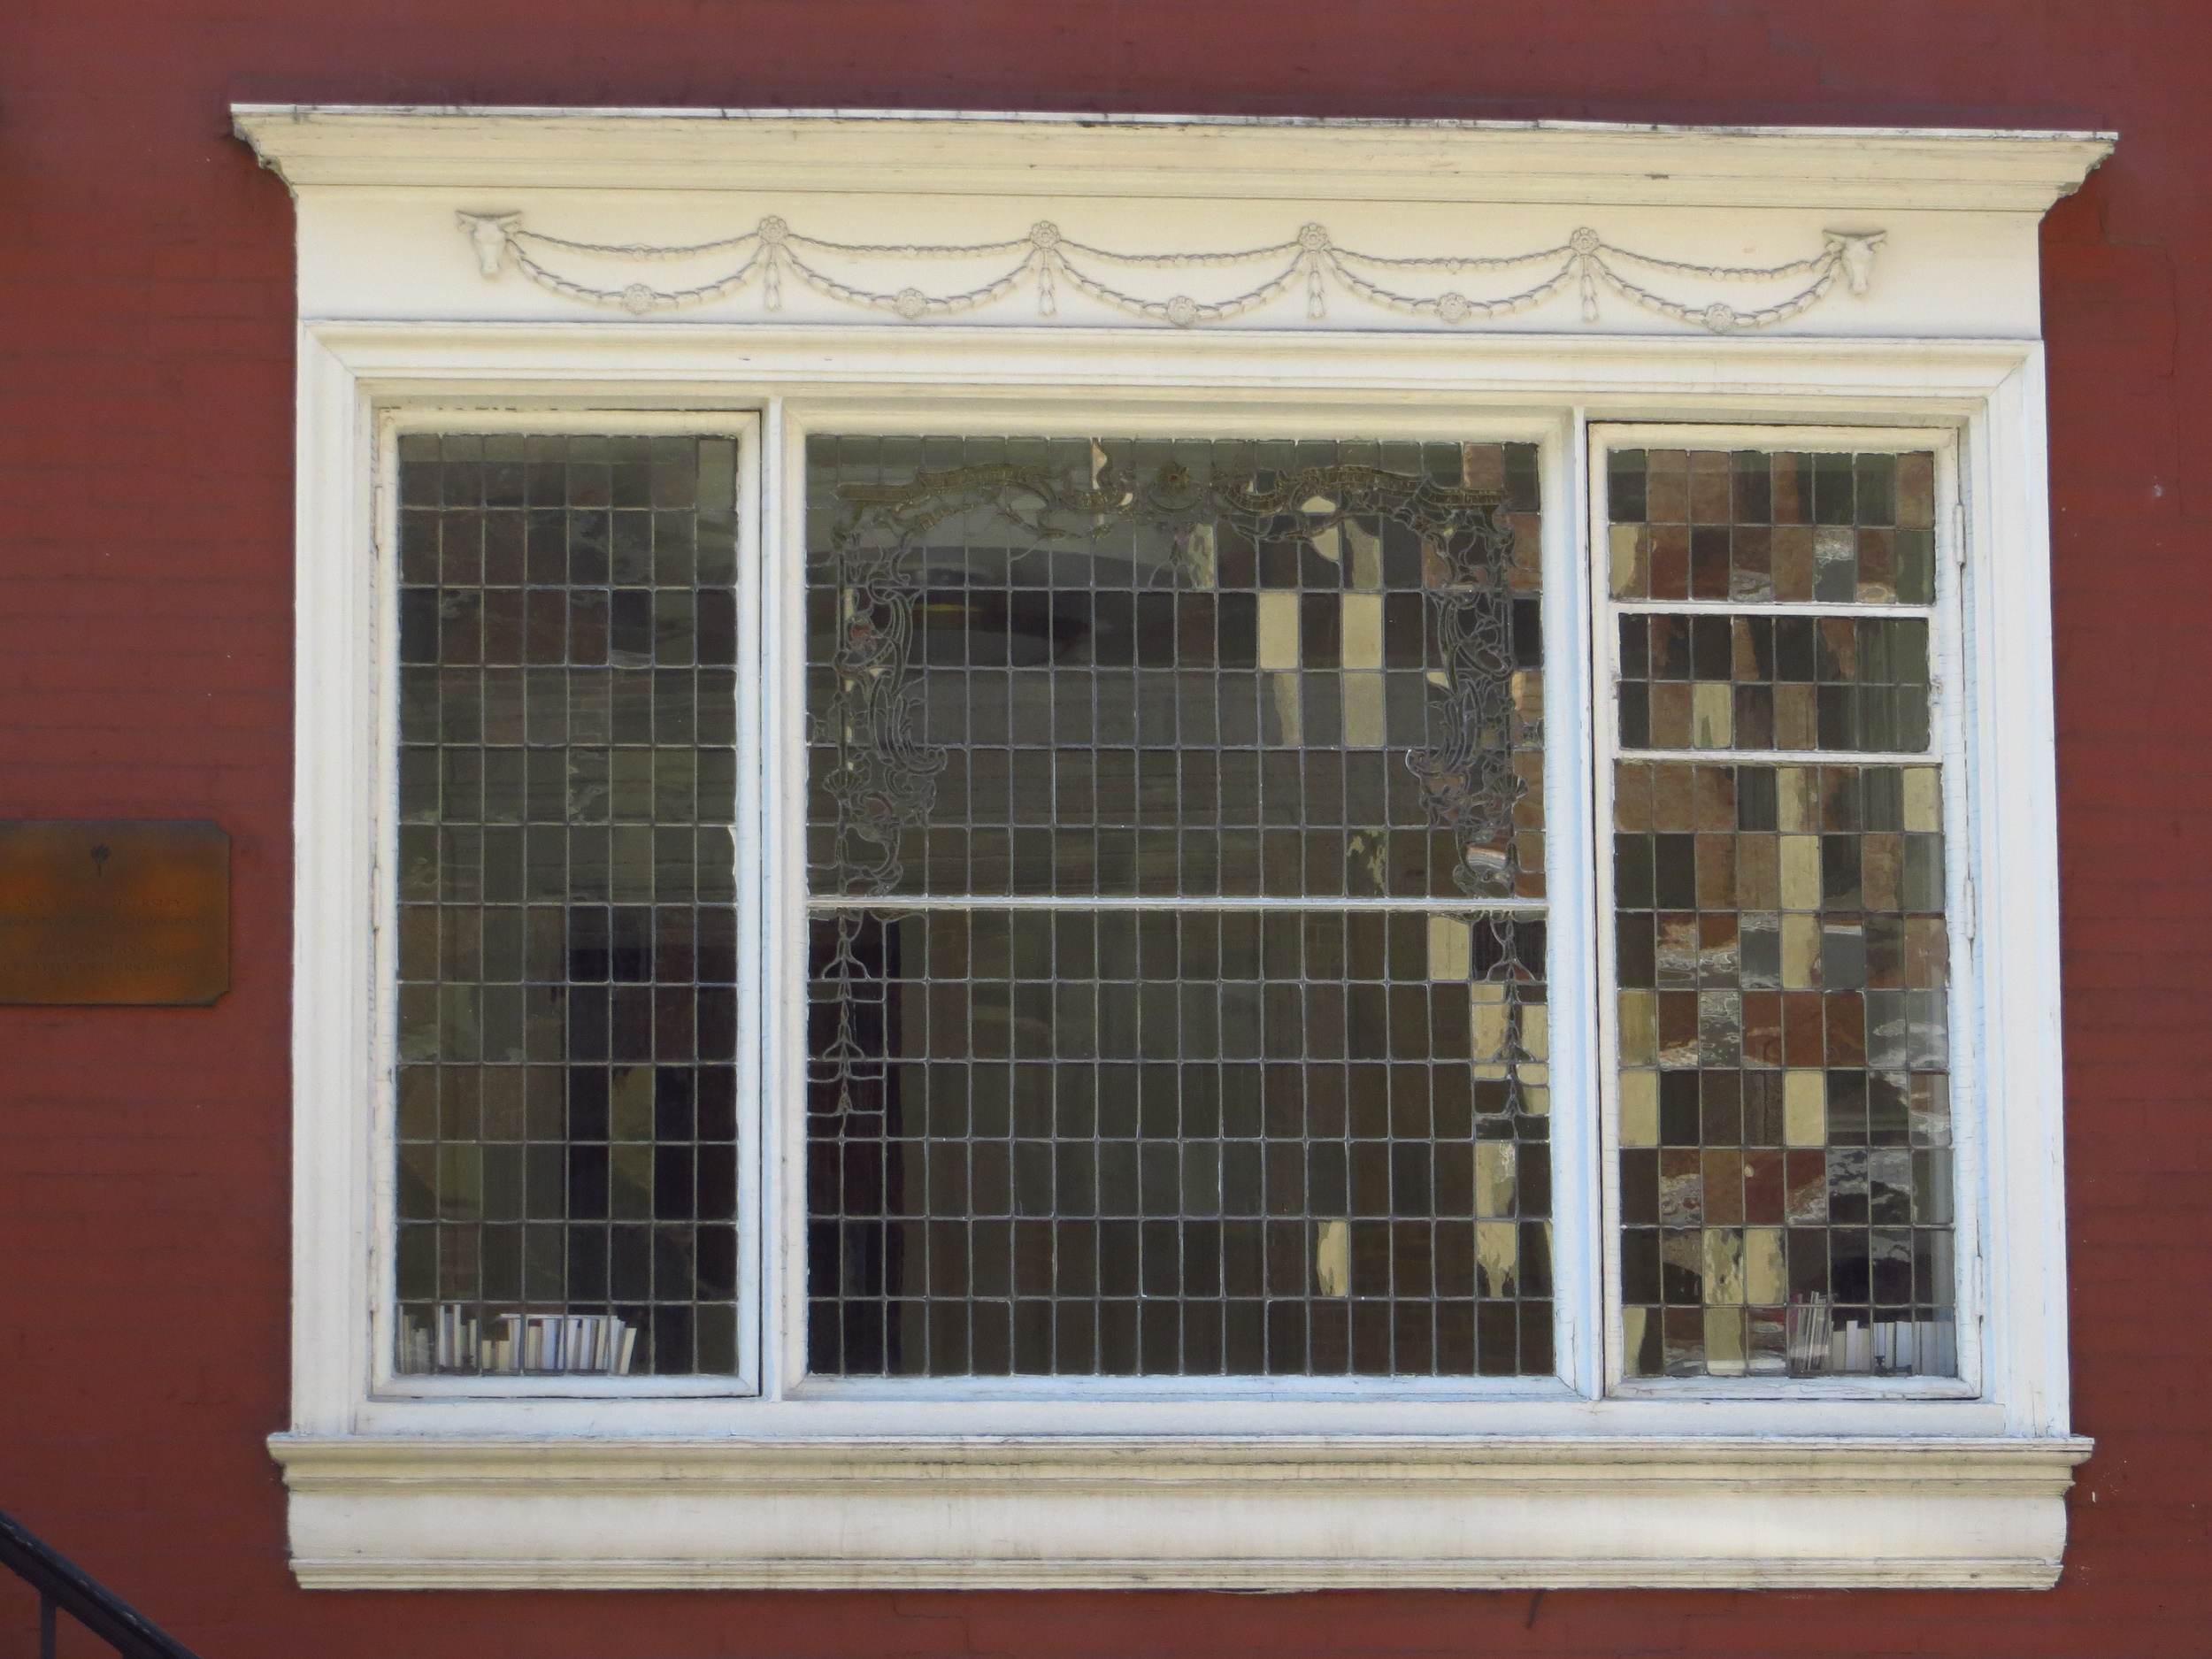 Another cool old window